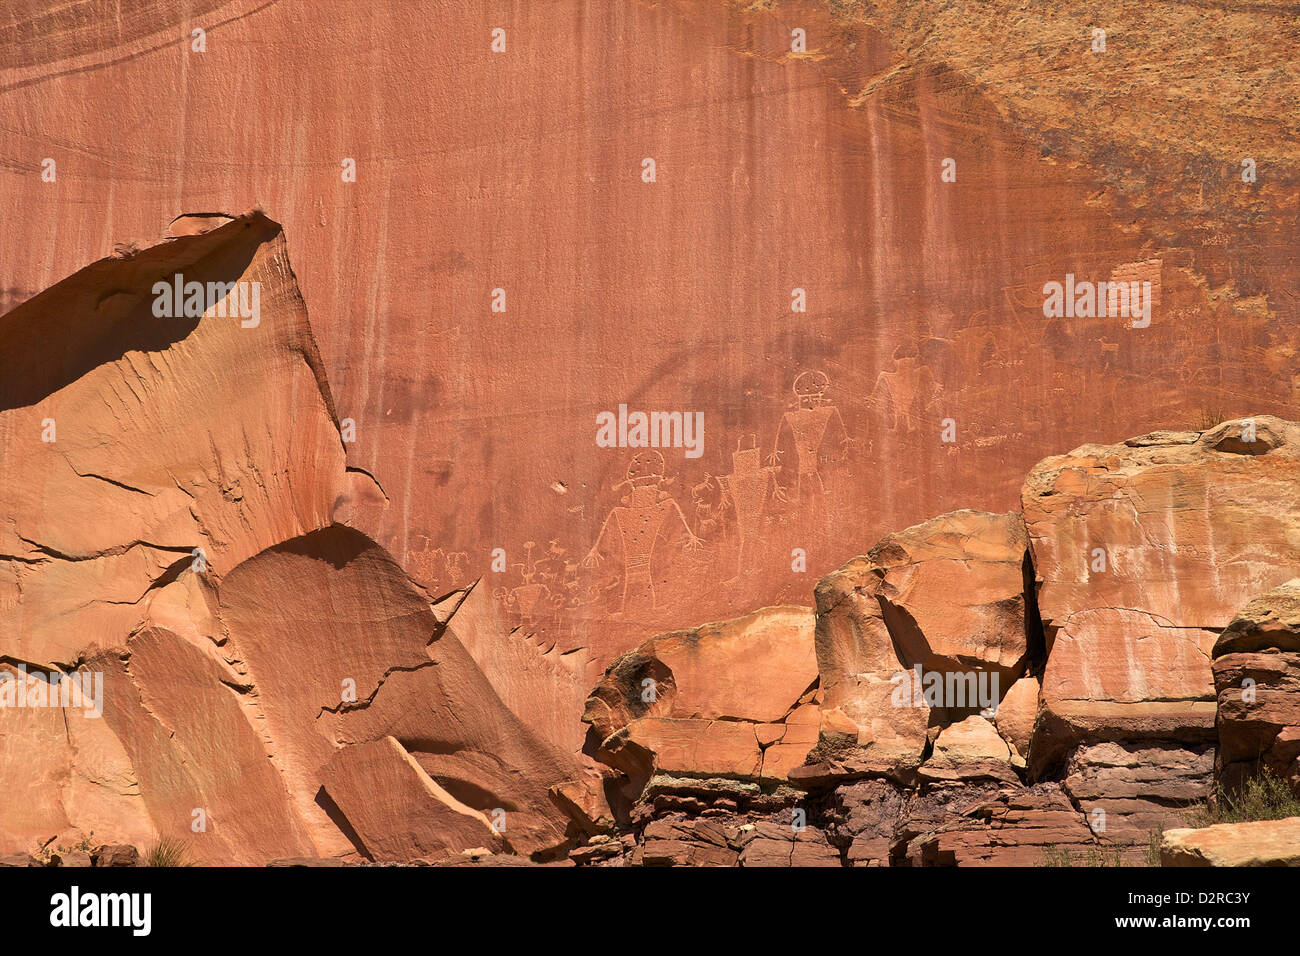 Fremont Indian petroglyphs in Capitol Reef National Park, Utah, United States of America, North America - Stock Image